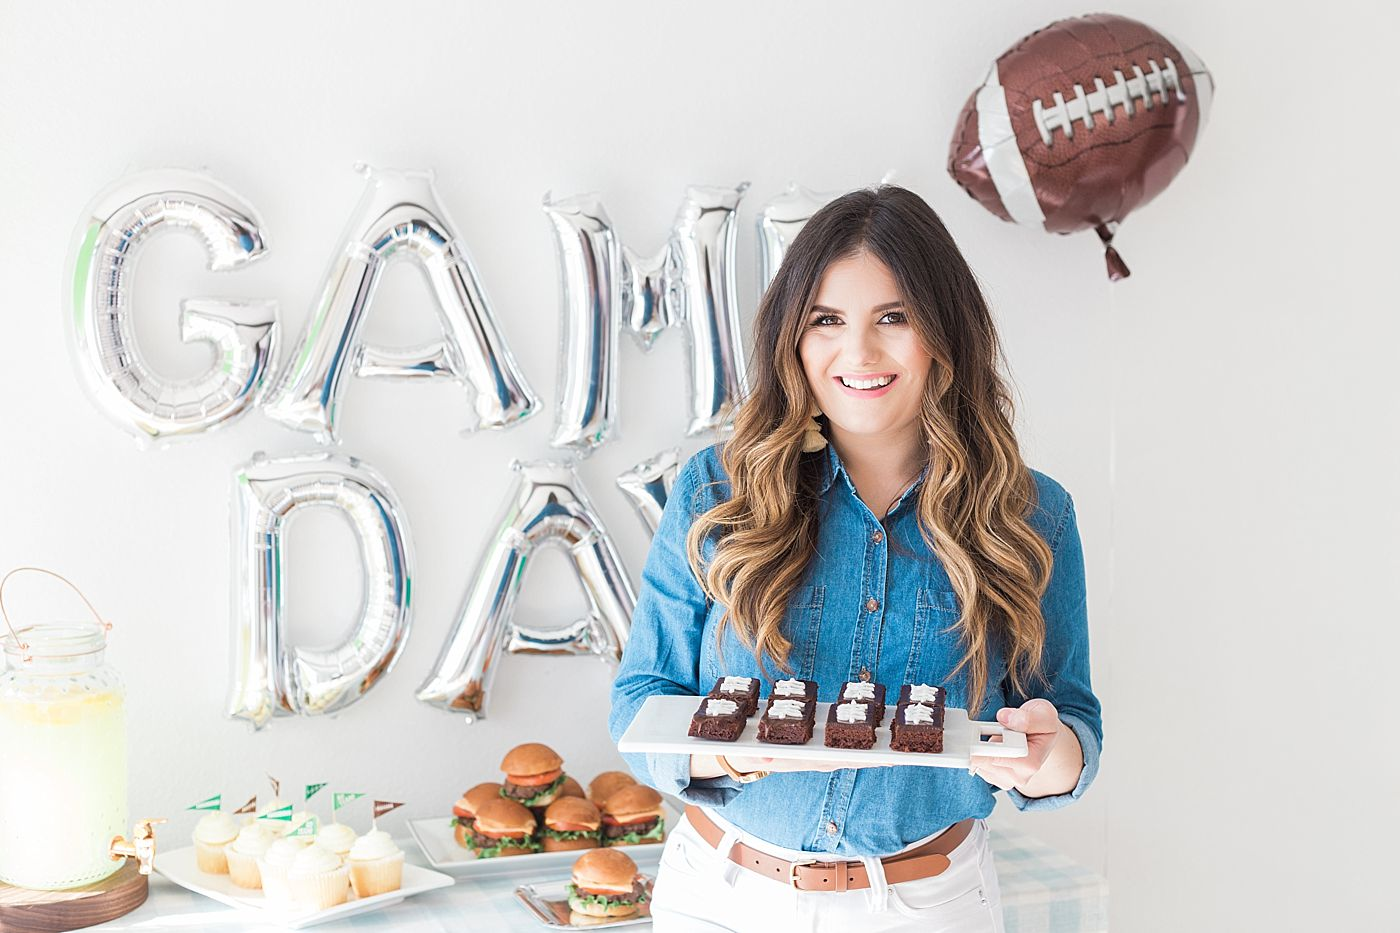 Game Day Fun - Best Friends for Frosting and UBER - Ashley Baumgartner - Sacramento Wedding Photography and Sacramento Wedding Photographer - Football Fun_0008.jpg